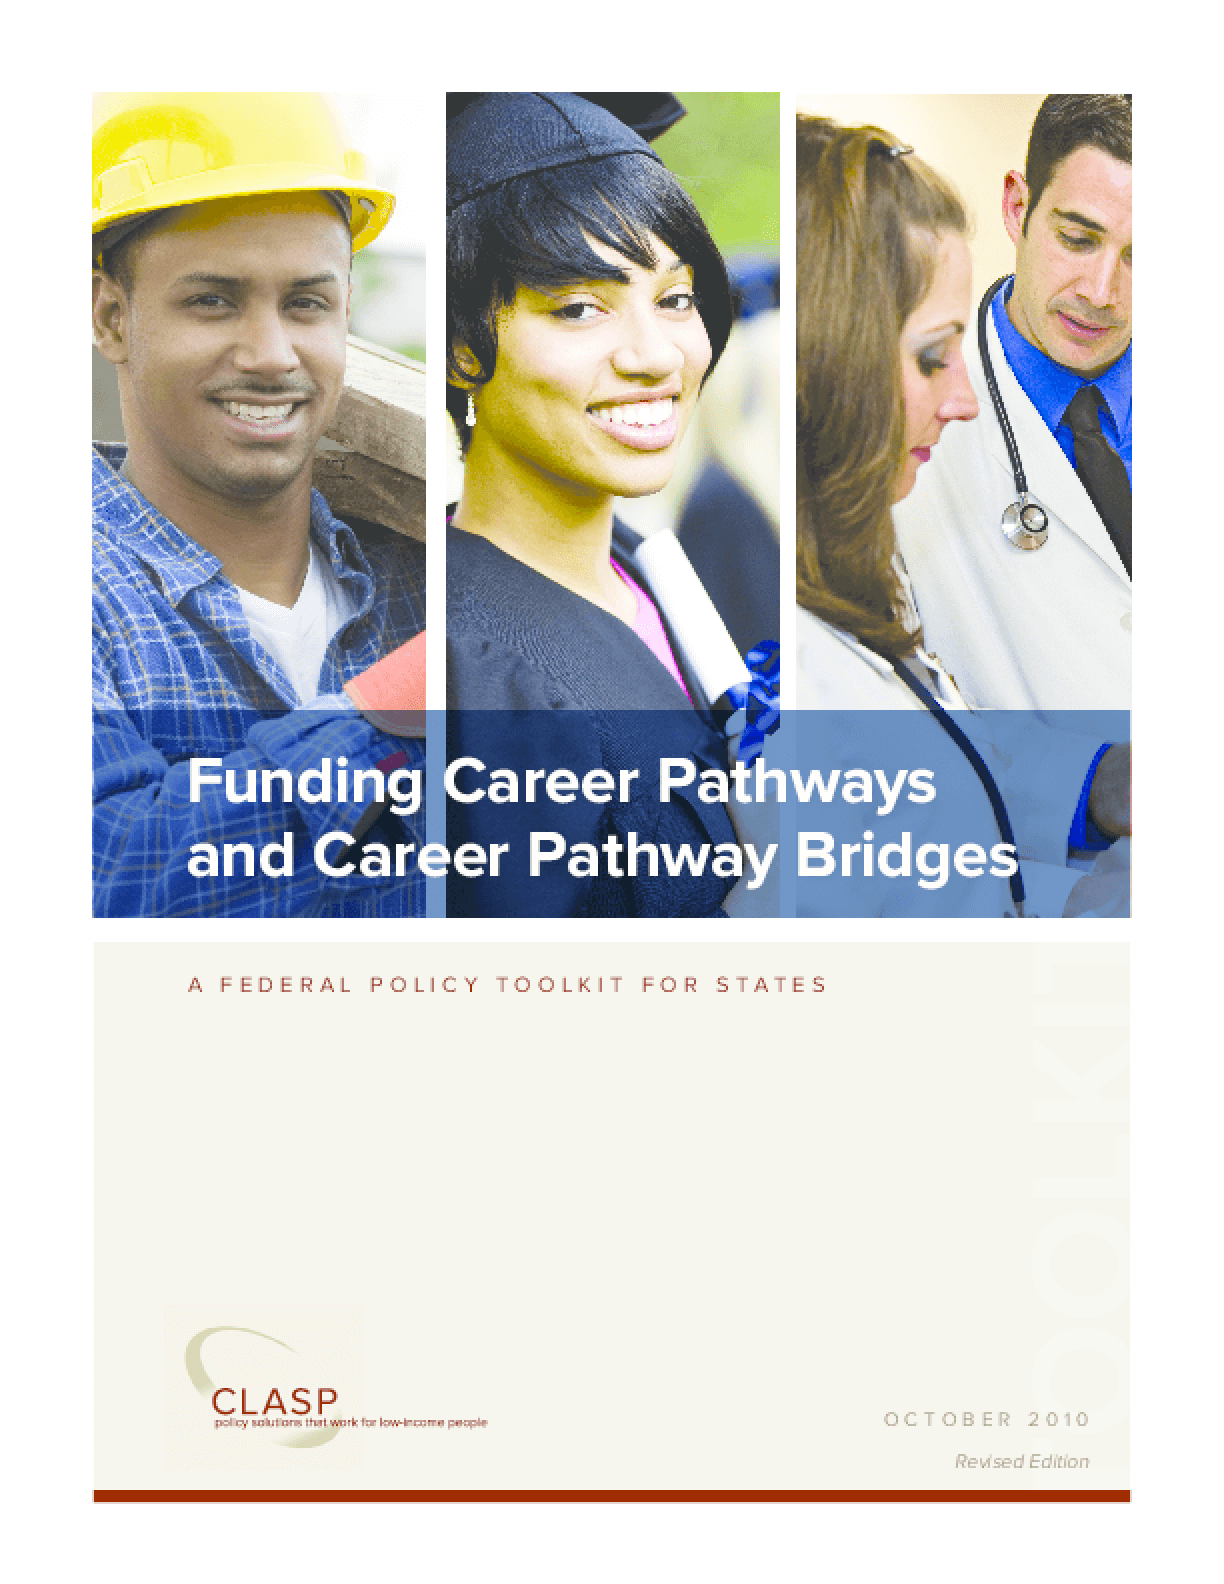 Funding Career Pathways and Career Pathway Bridges: A Federal Policy Toolkit for States